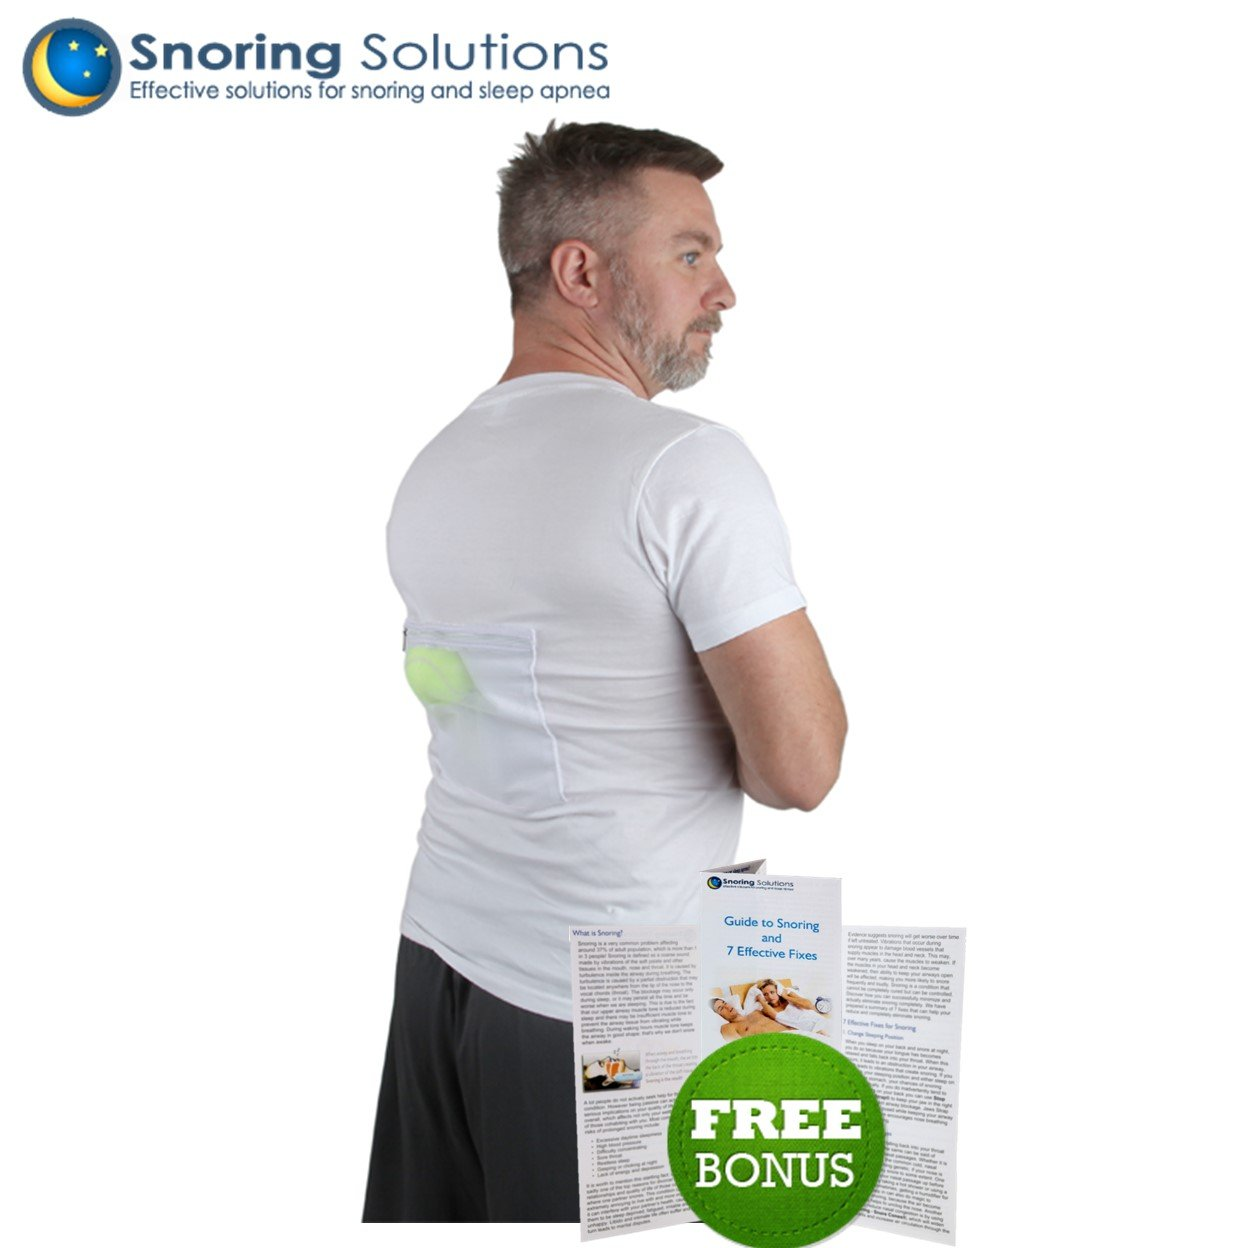 Stop Snoring T-Shirt - Most Comfortable Snoring Aid. Health Expert Recommended for Back Snorers! Eliminates Snoring by adjusting your sleeping position. INCLUDED: Guide to Snoring Ebook best anti-snoring devices Best Anti-snoring Devices –   How to Prevent Snoring with Top Devices 61S 2BbqK0eyL